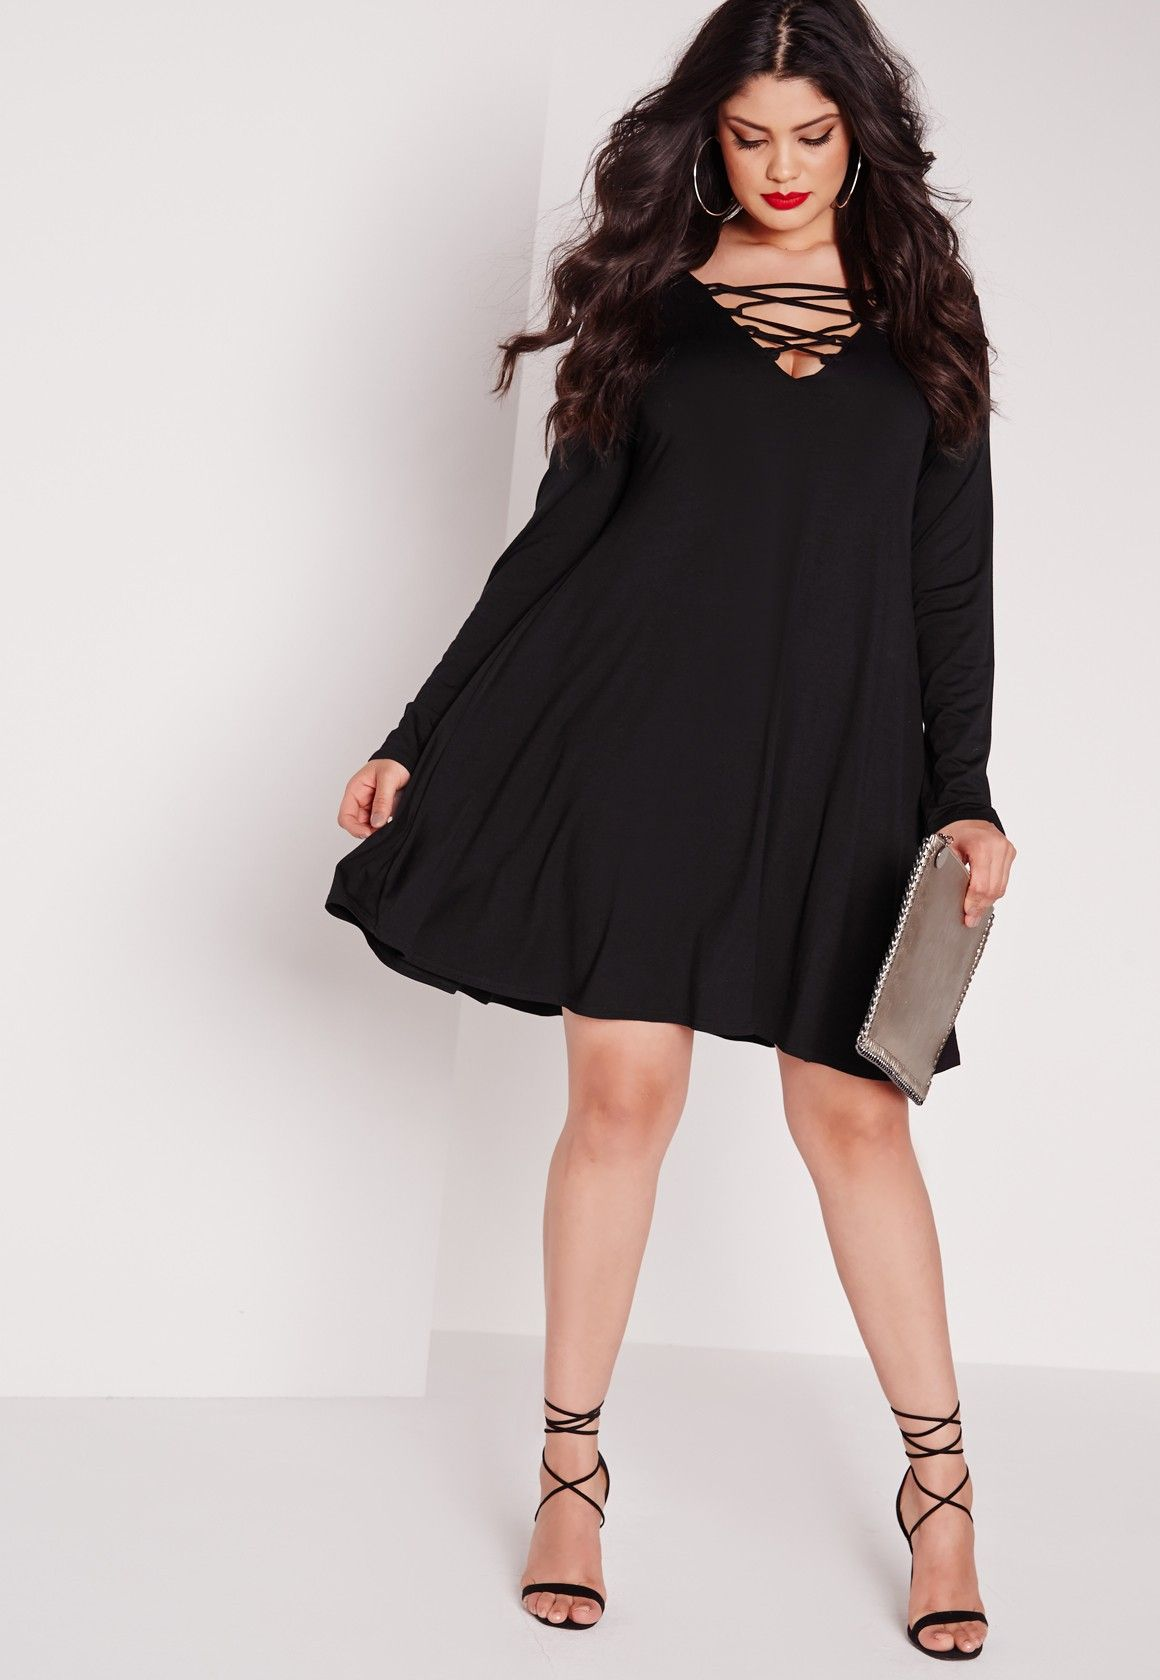 Missguided - Plus Size Lace Up Swing Dress Black   Threads ...